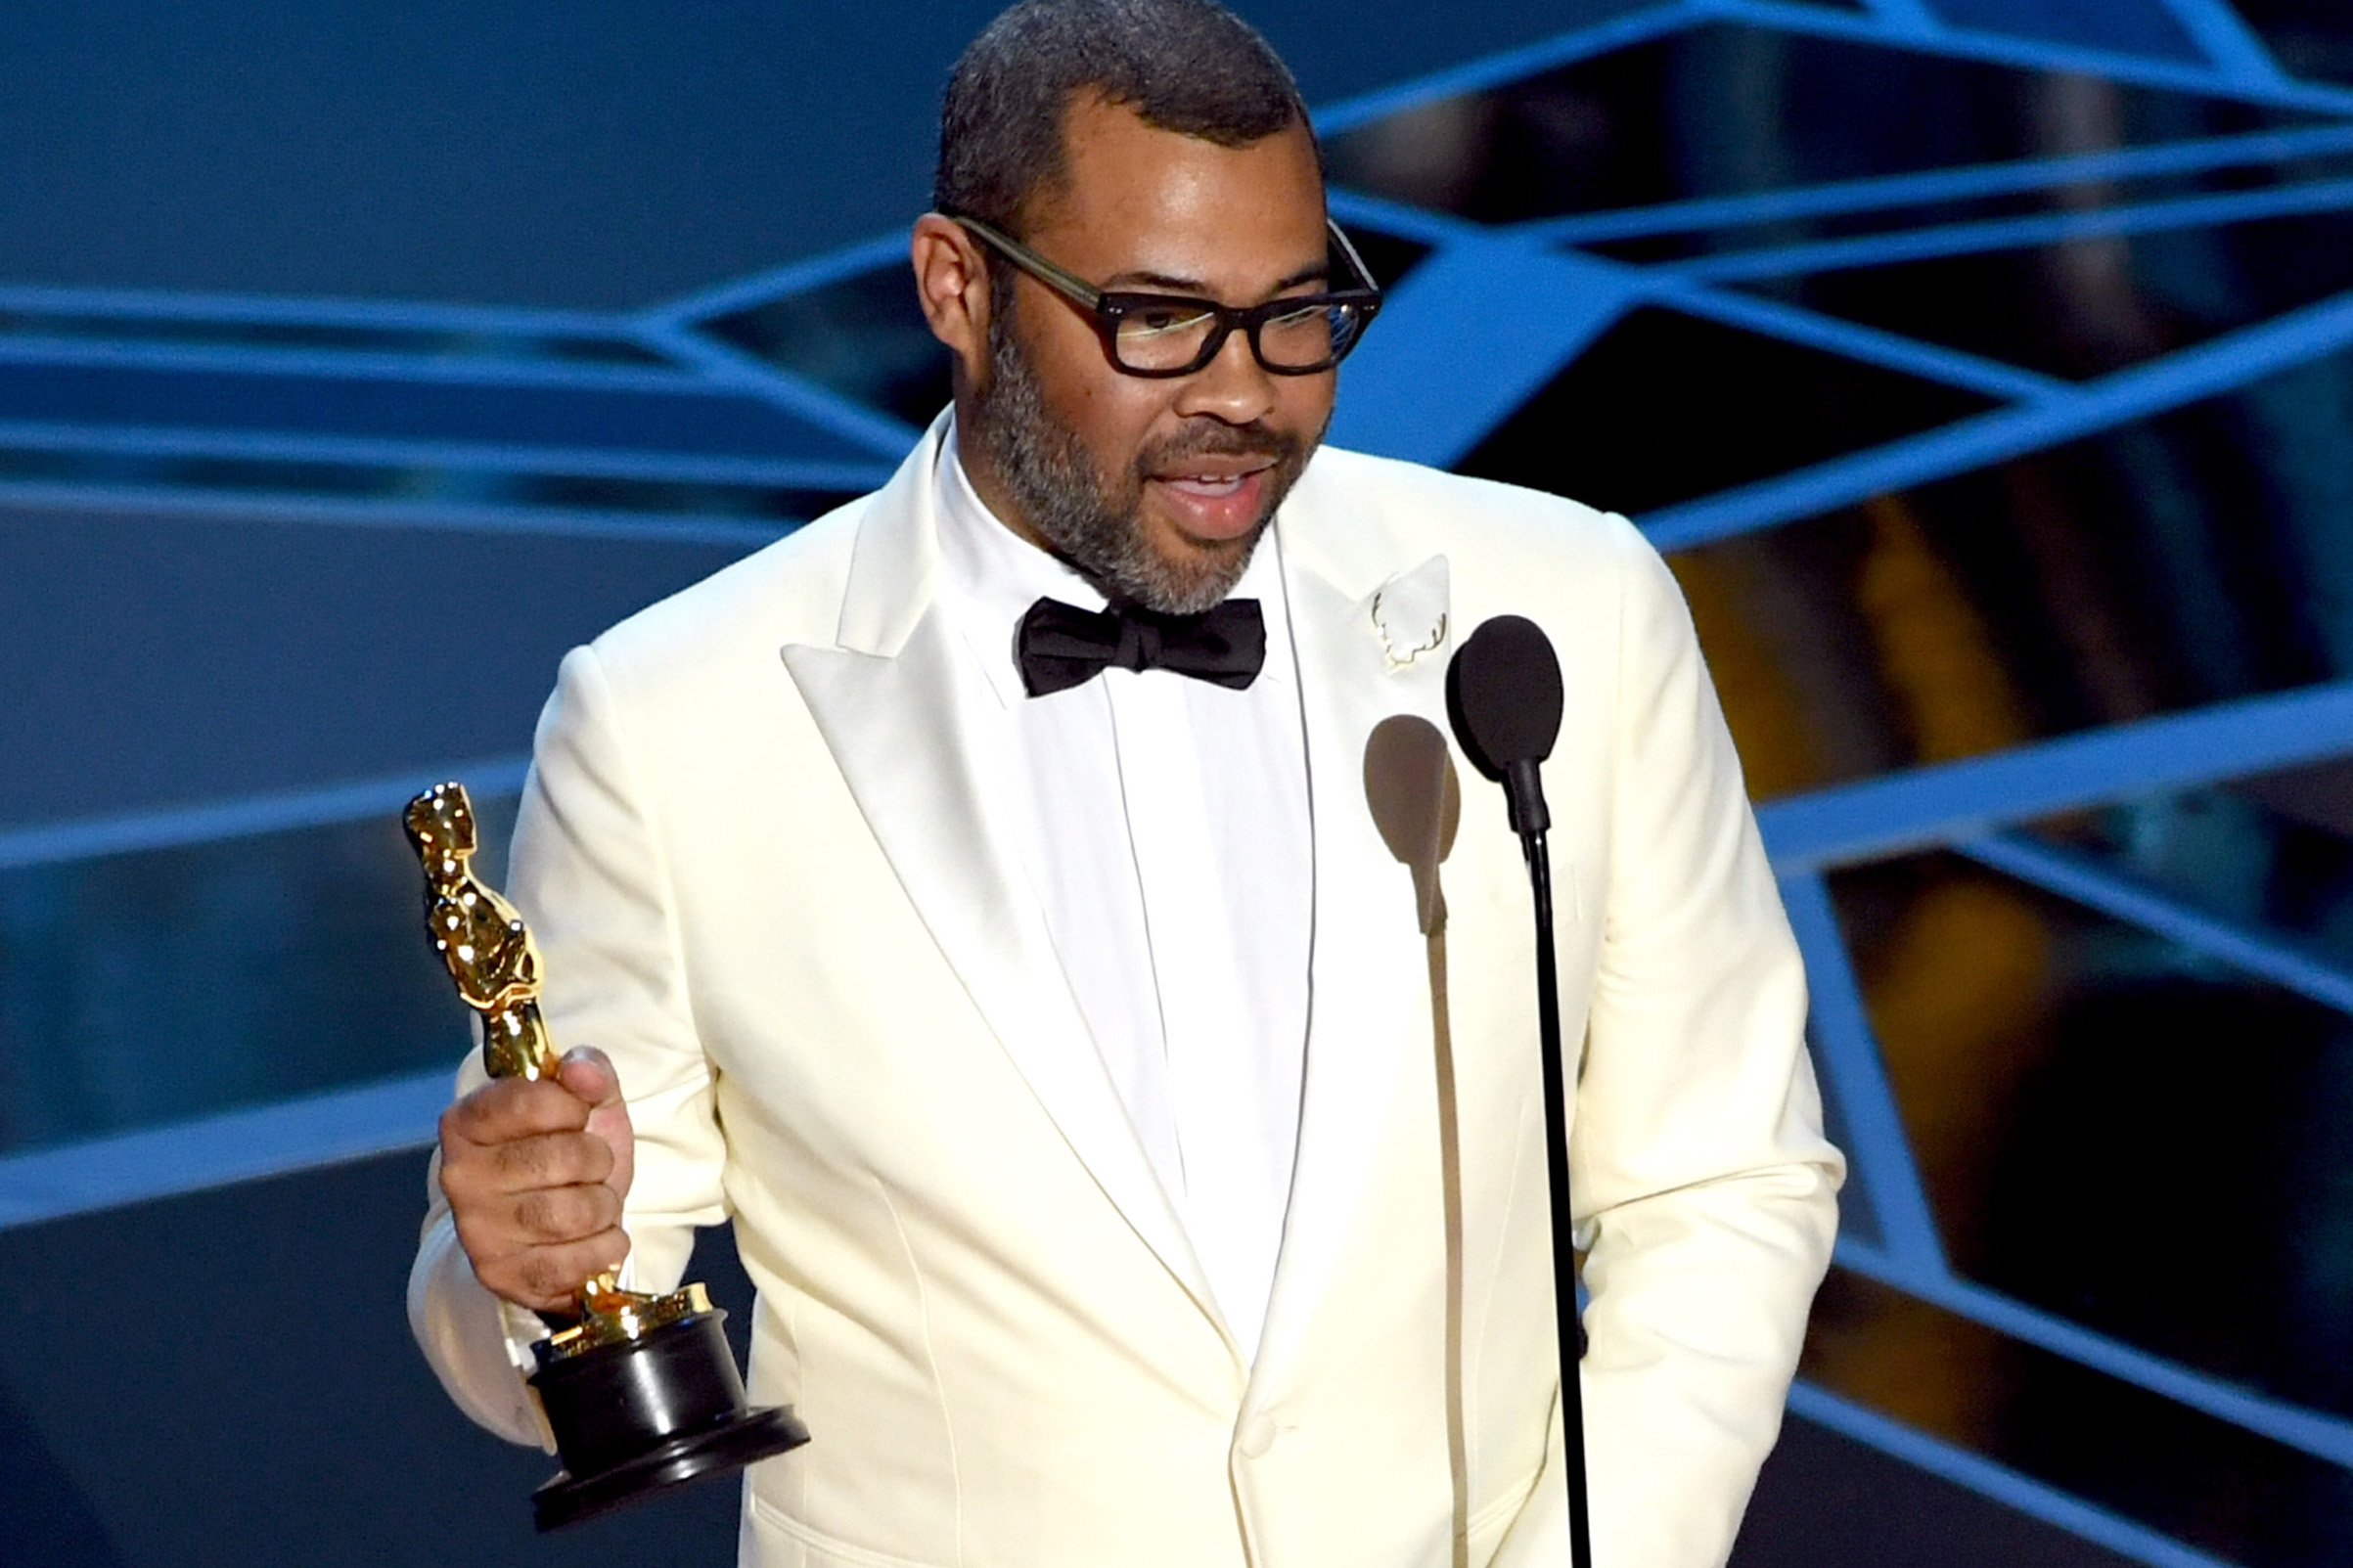 Jordan Peele, writer and director of  Get Out , made Oscar history last night as the first black person to win Best Original Screenplay.